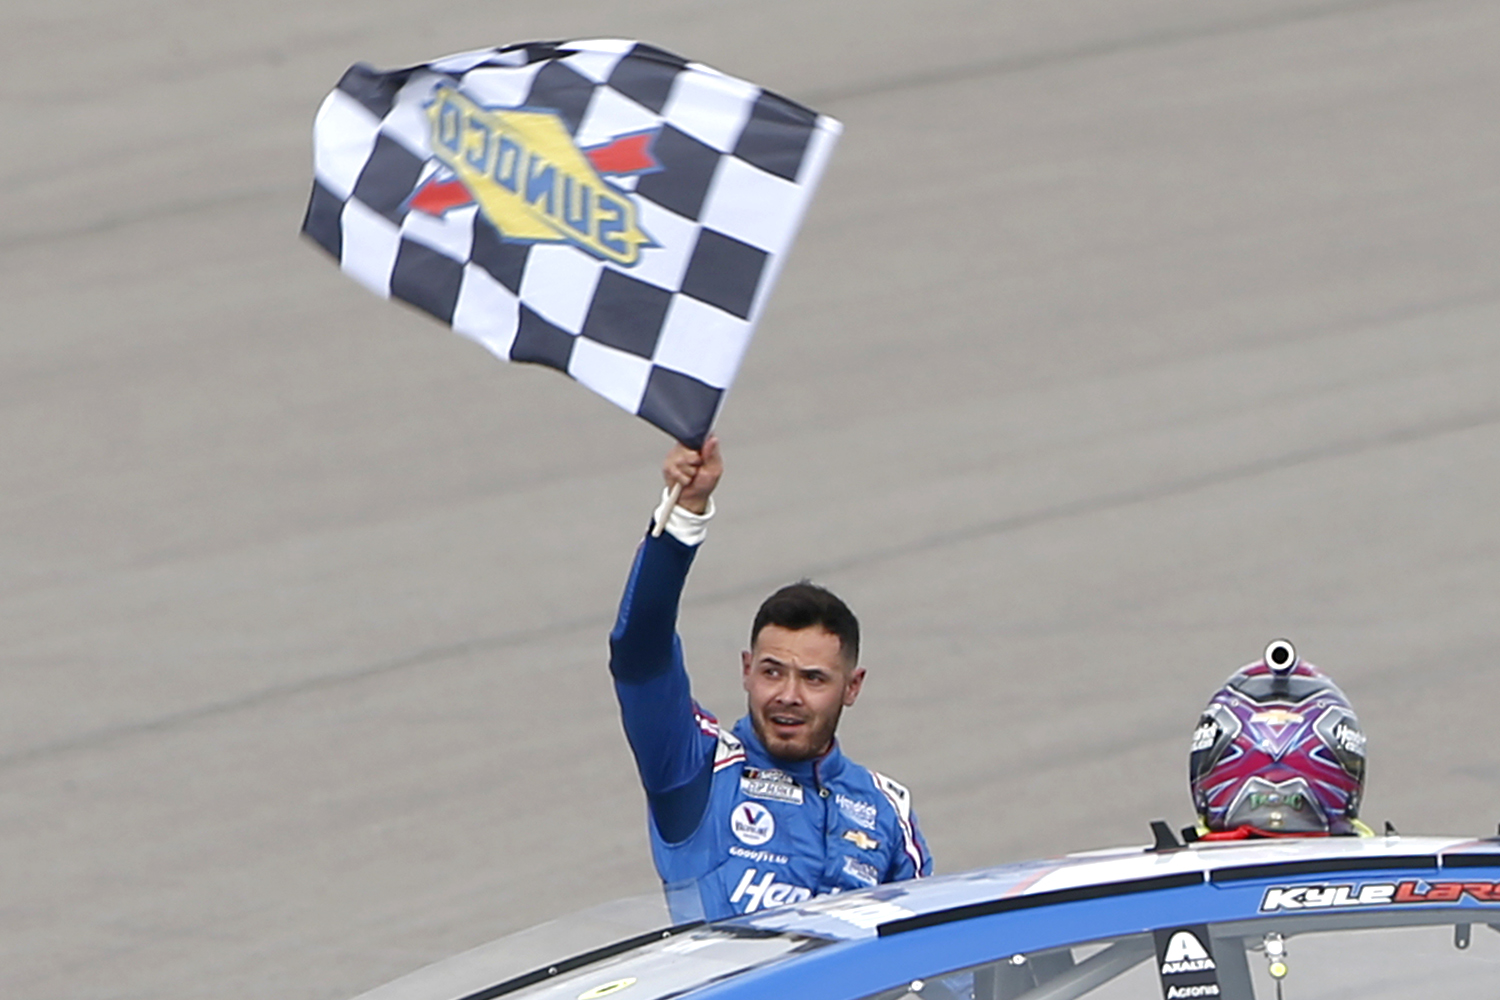 Kyle Larson, driver of the #5 HendrickCars.com Chevrolet, celebrates with the checkered flag after winning the NASCAR Cup